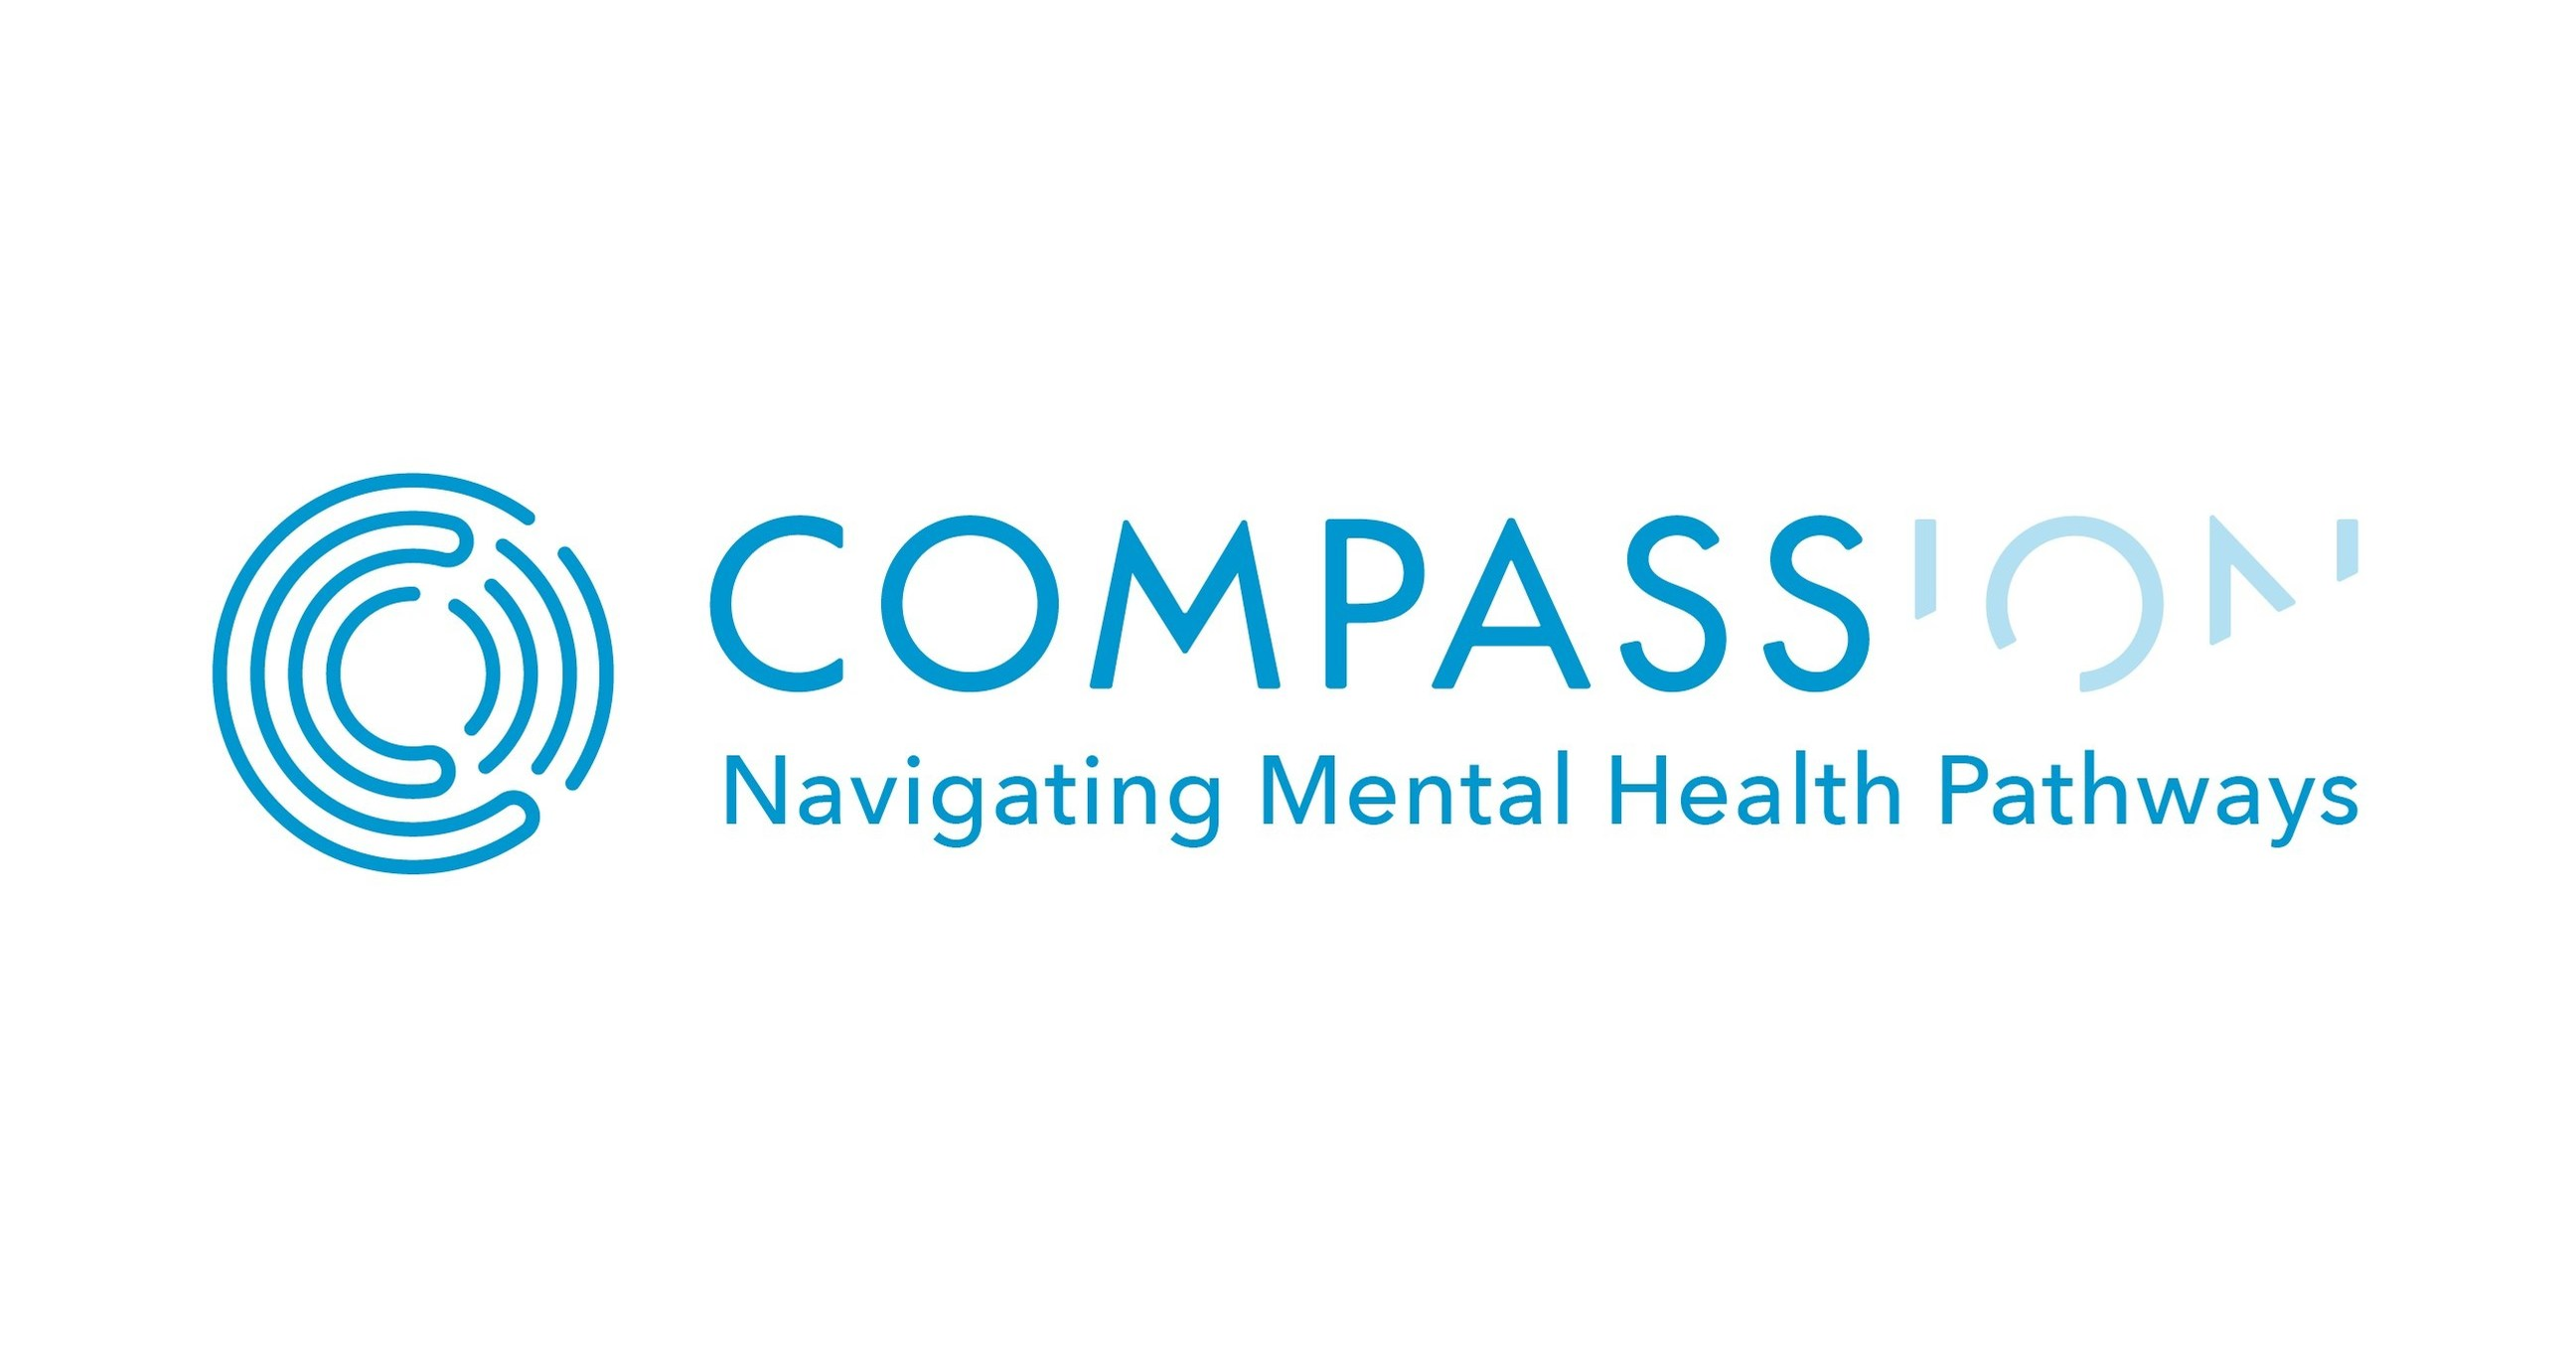 COMPASS Pathways Granted Patent Covering Use of Its Psilocybin Formulation in Addressing Treatment-resistant Depression